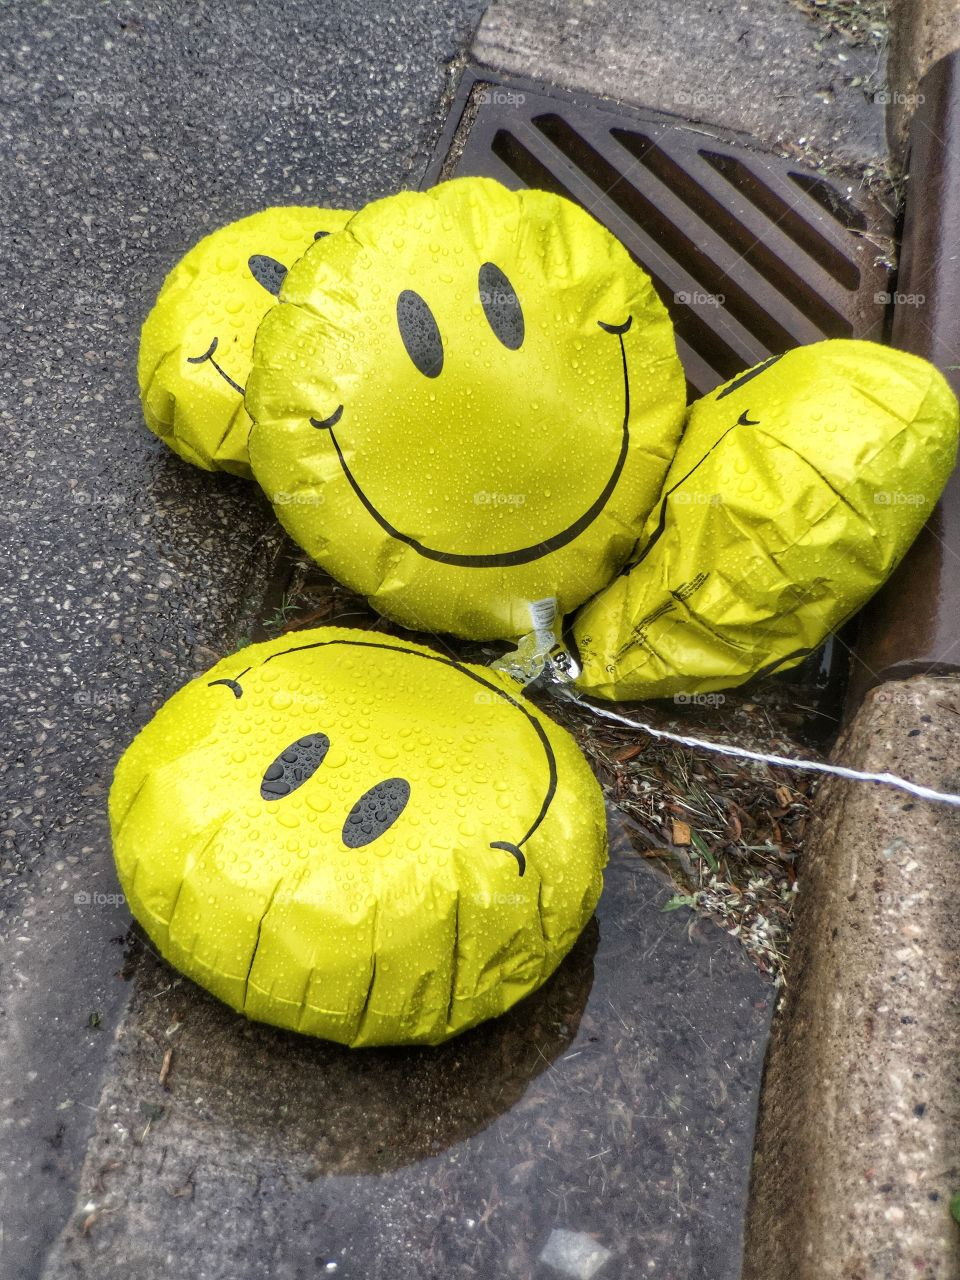 Smiley Faces in a Sad State